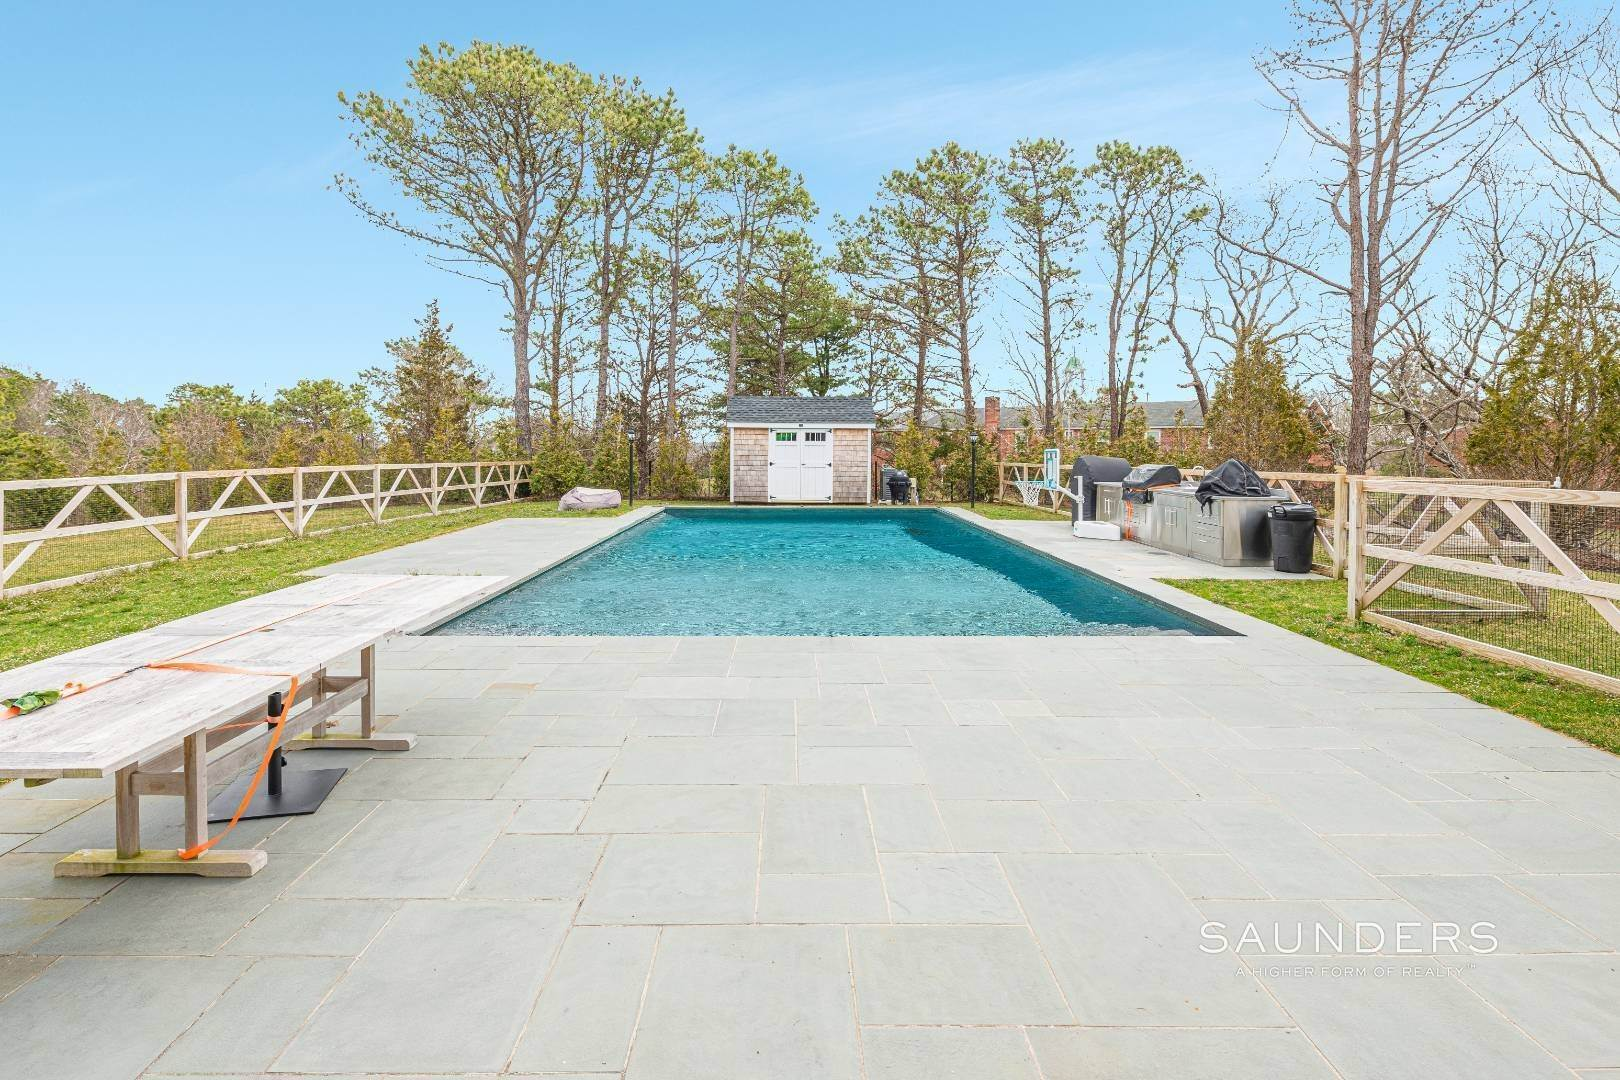 3. Single Family Homes for Sale at Beautiful Southampton Renovation With Pool And Outdoor Kitchen 80 Blackwatch Court, Southampton, Southampton Town, NY 11968